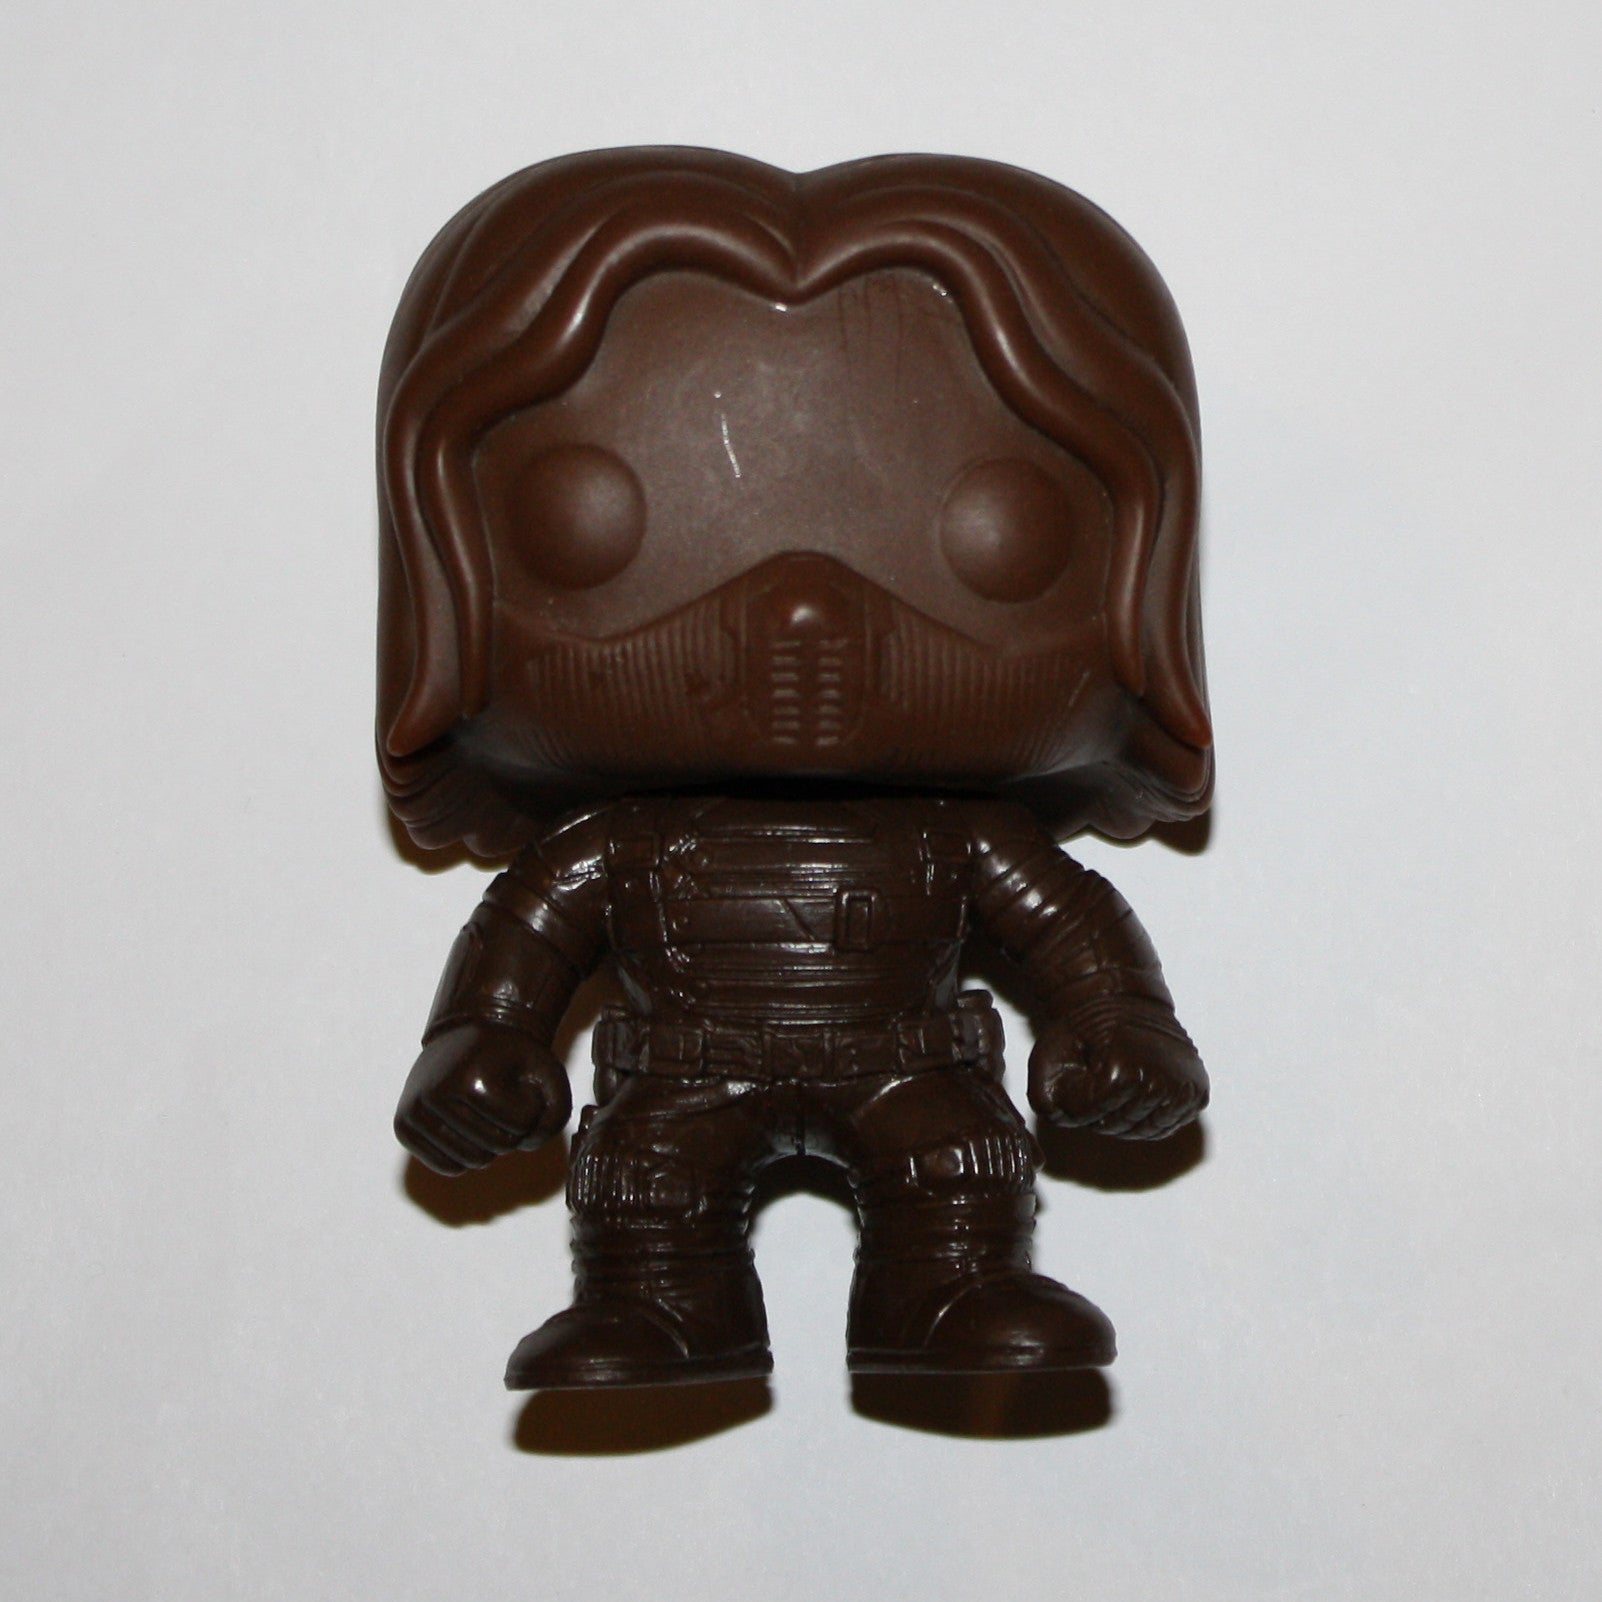 Winter Soldier Unmasked [Captain America: Winter Soldier] Proto